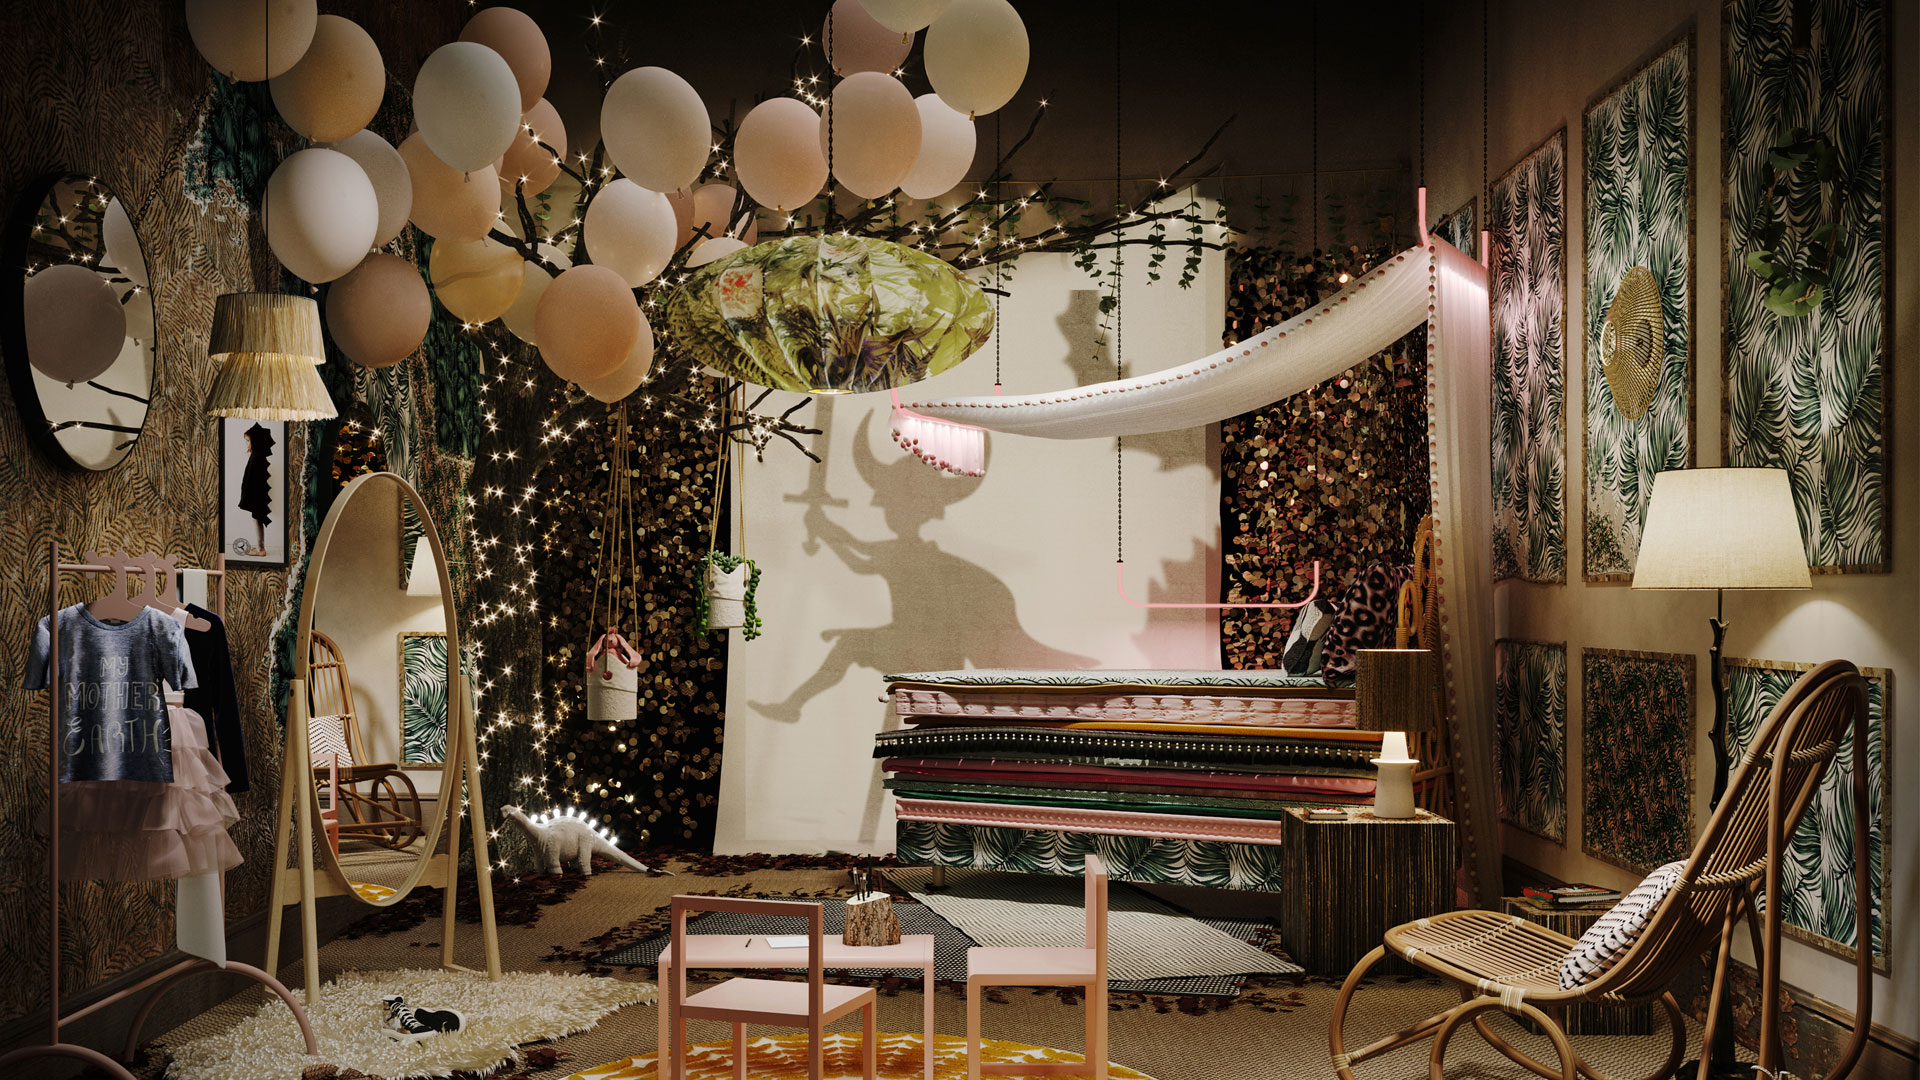 Highlights From Decorex International 2019 decorex international 2019 Highlights From Decorex International 2019 Banner image1